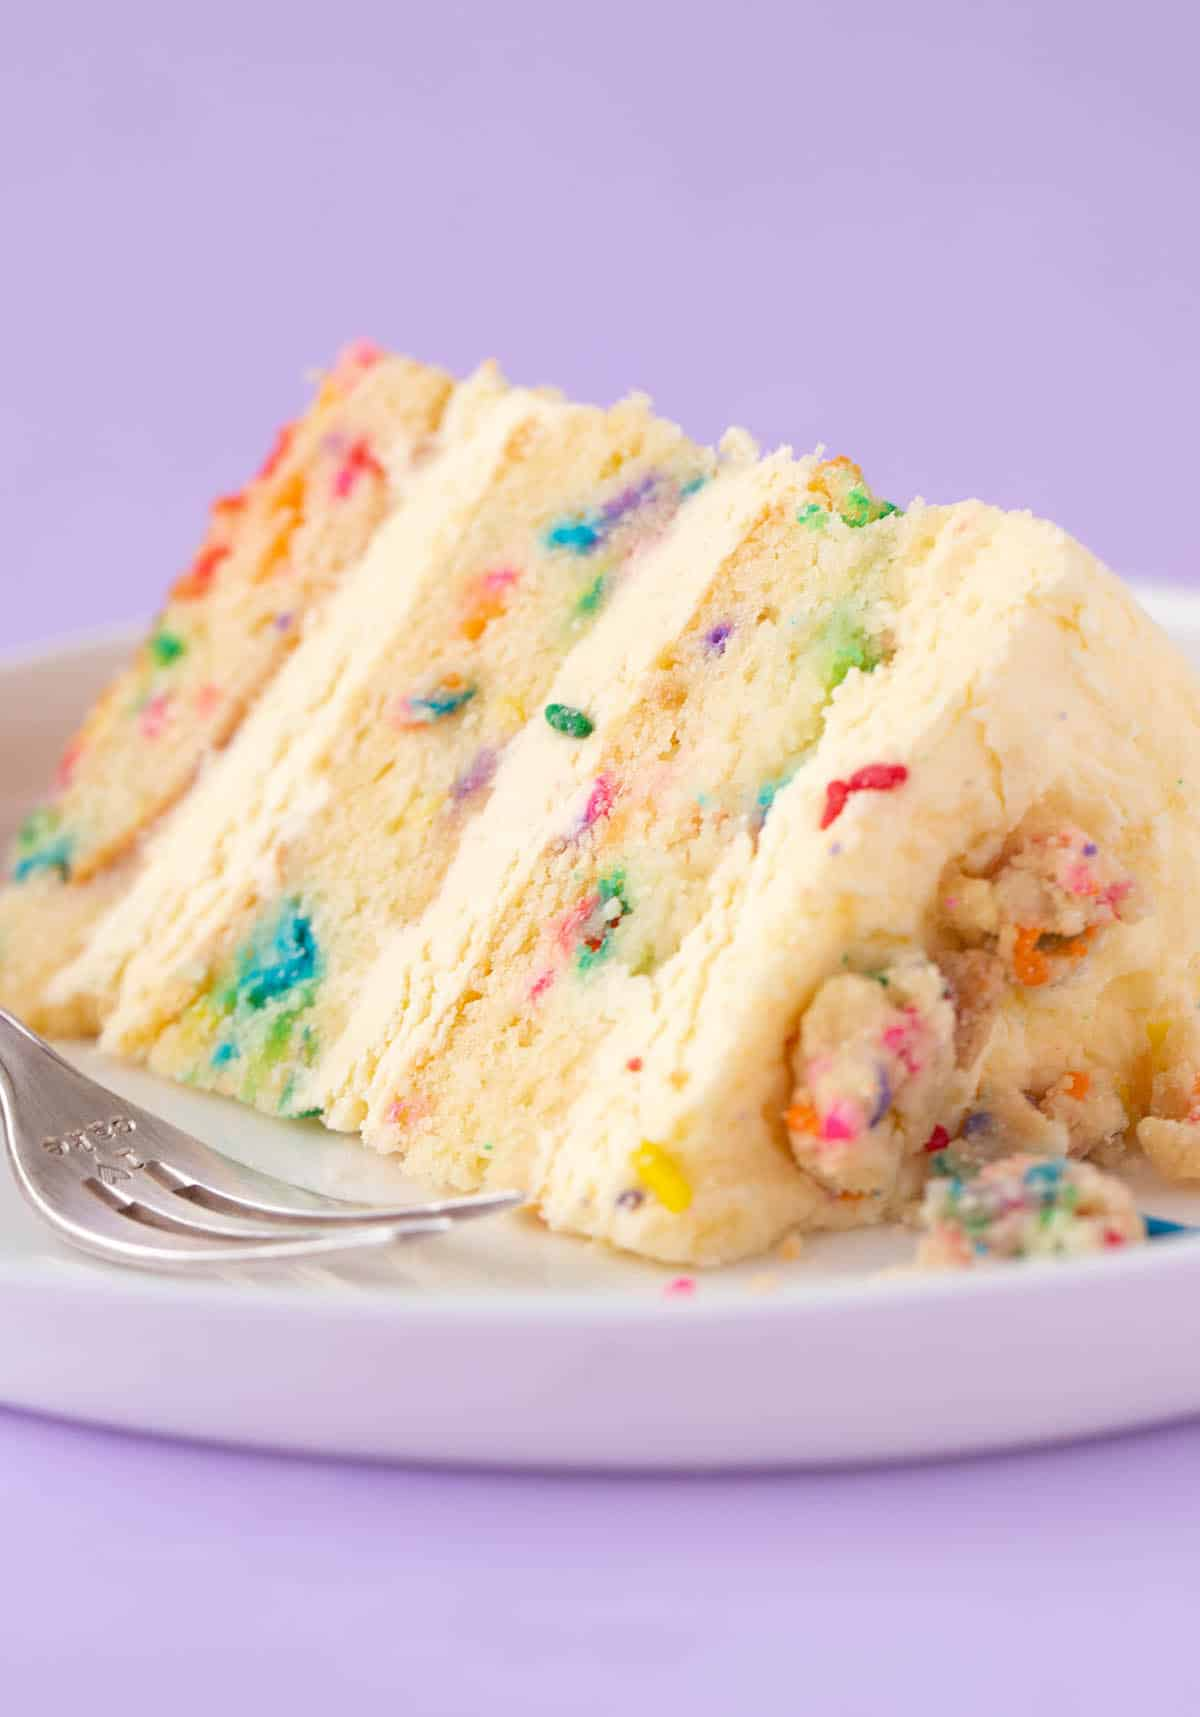 A beautiful slice of Birthday Cake on a purple background